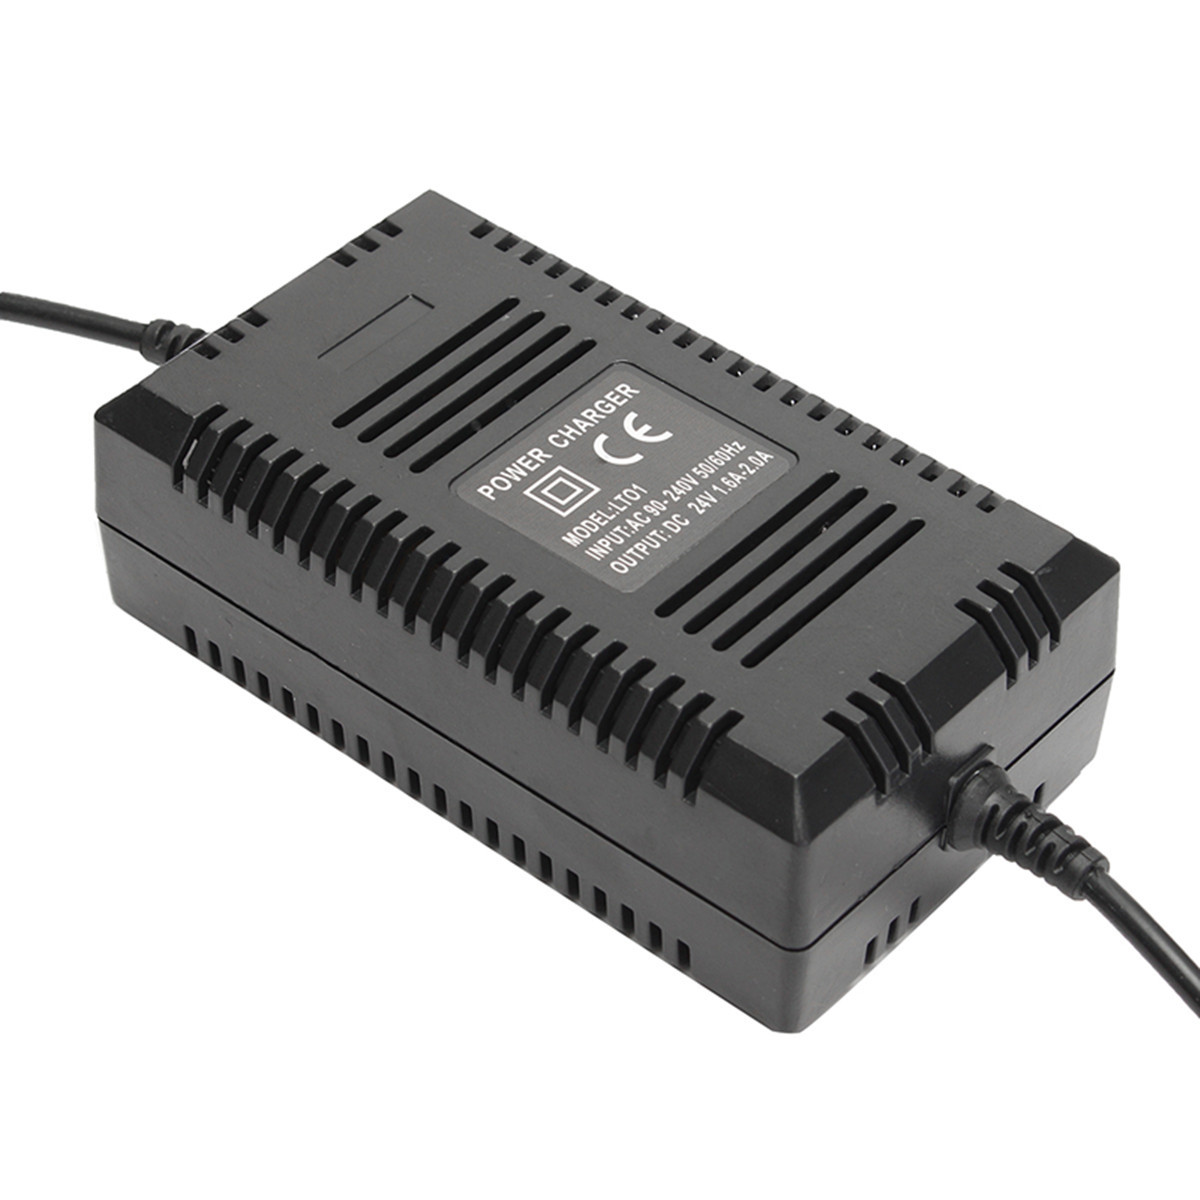 24V 2A Power Charger For Electric Scooter Three Port Inline Female Connector